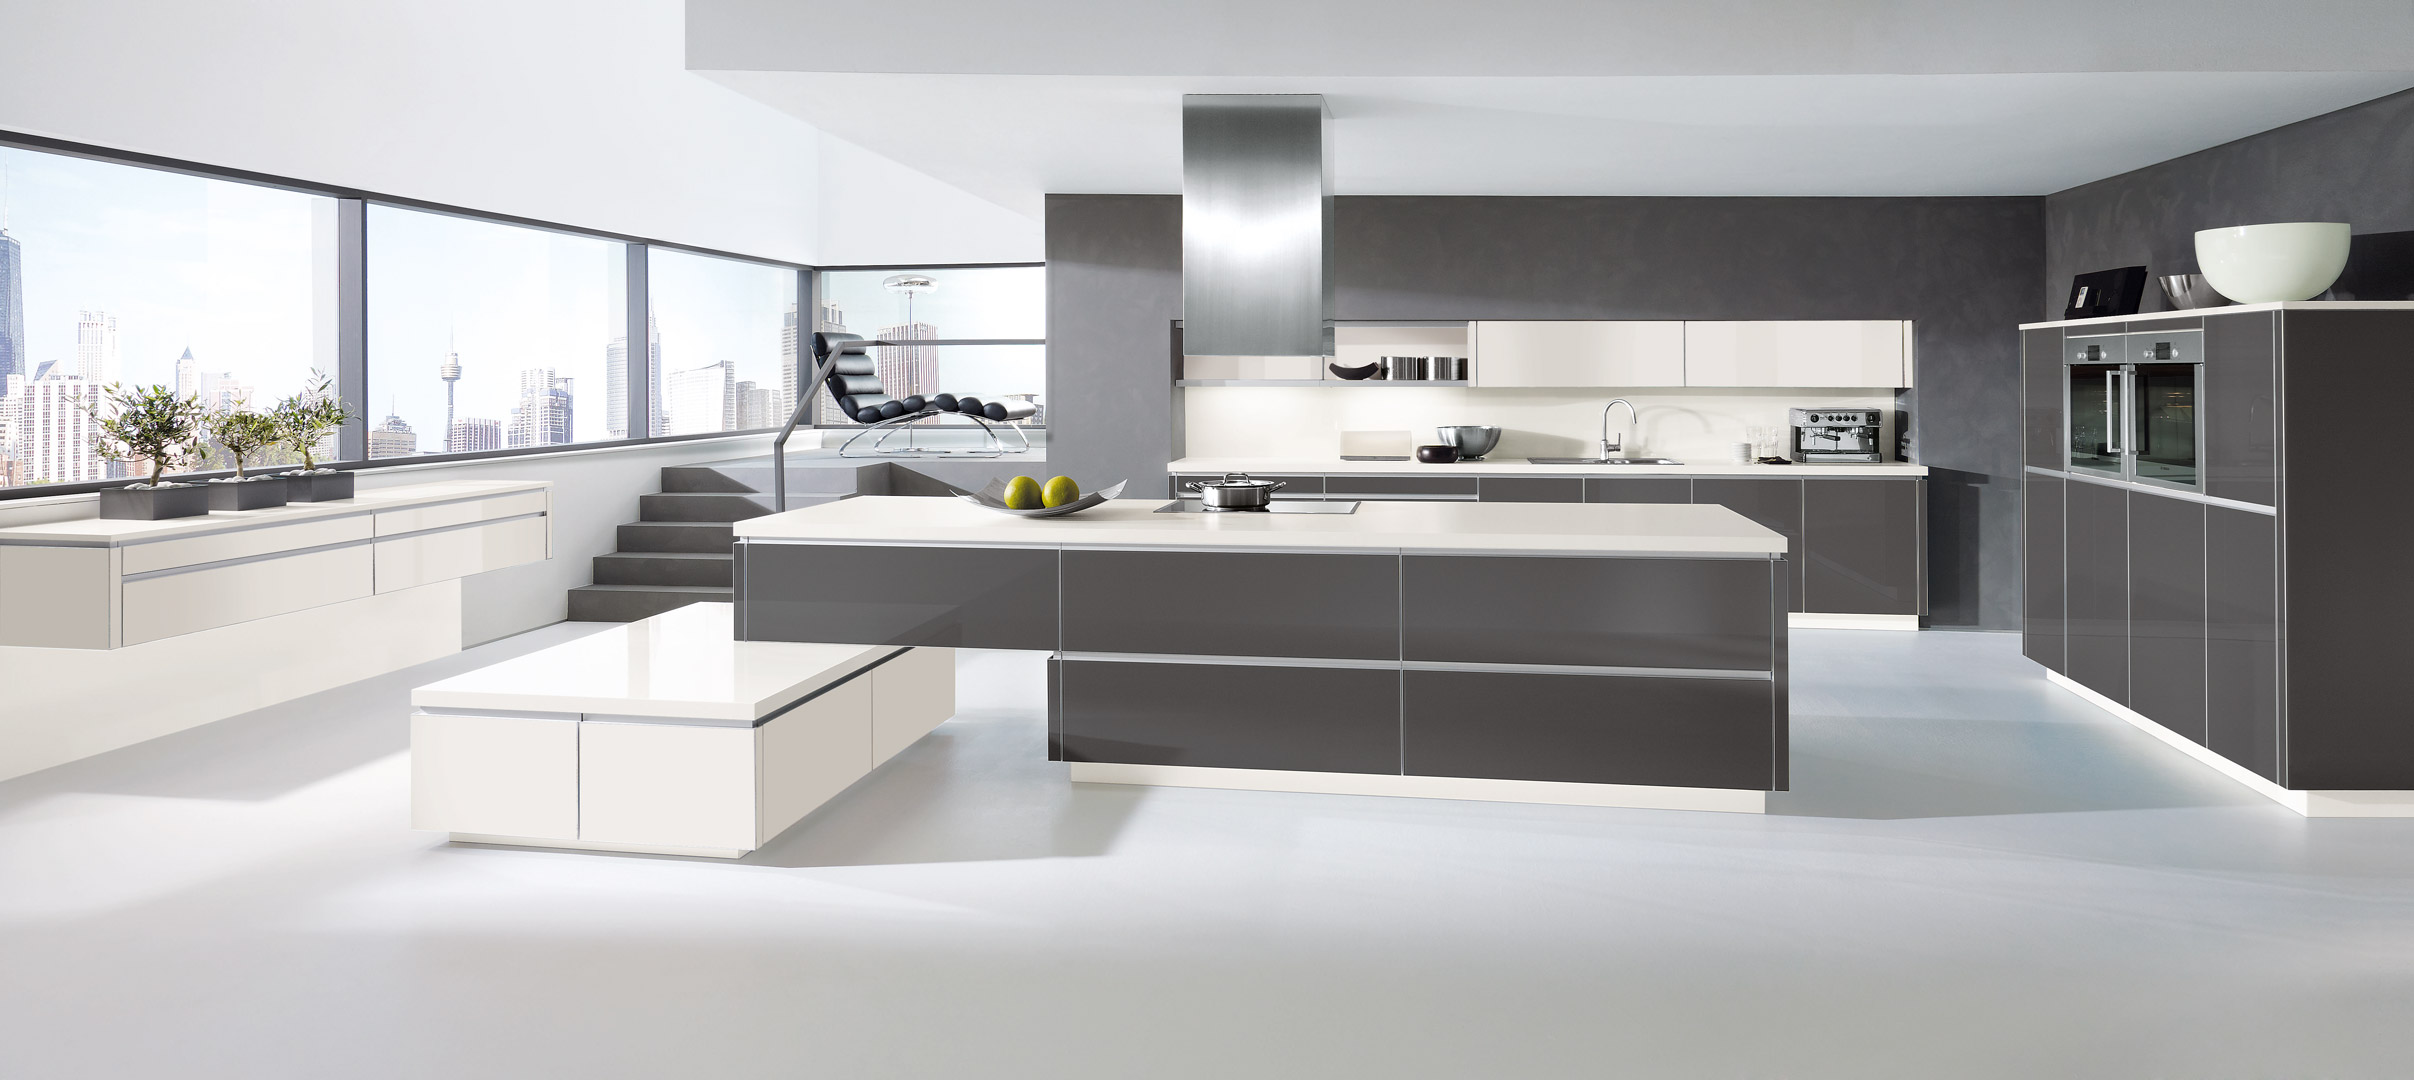 Fitted kitchens by alno sussex surrey london - Muebles de cocina dica ...